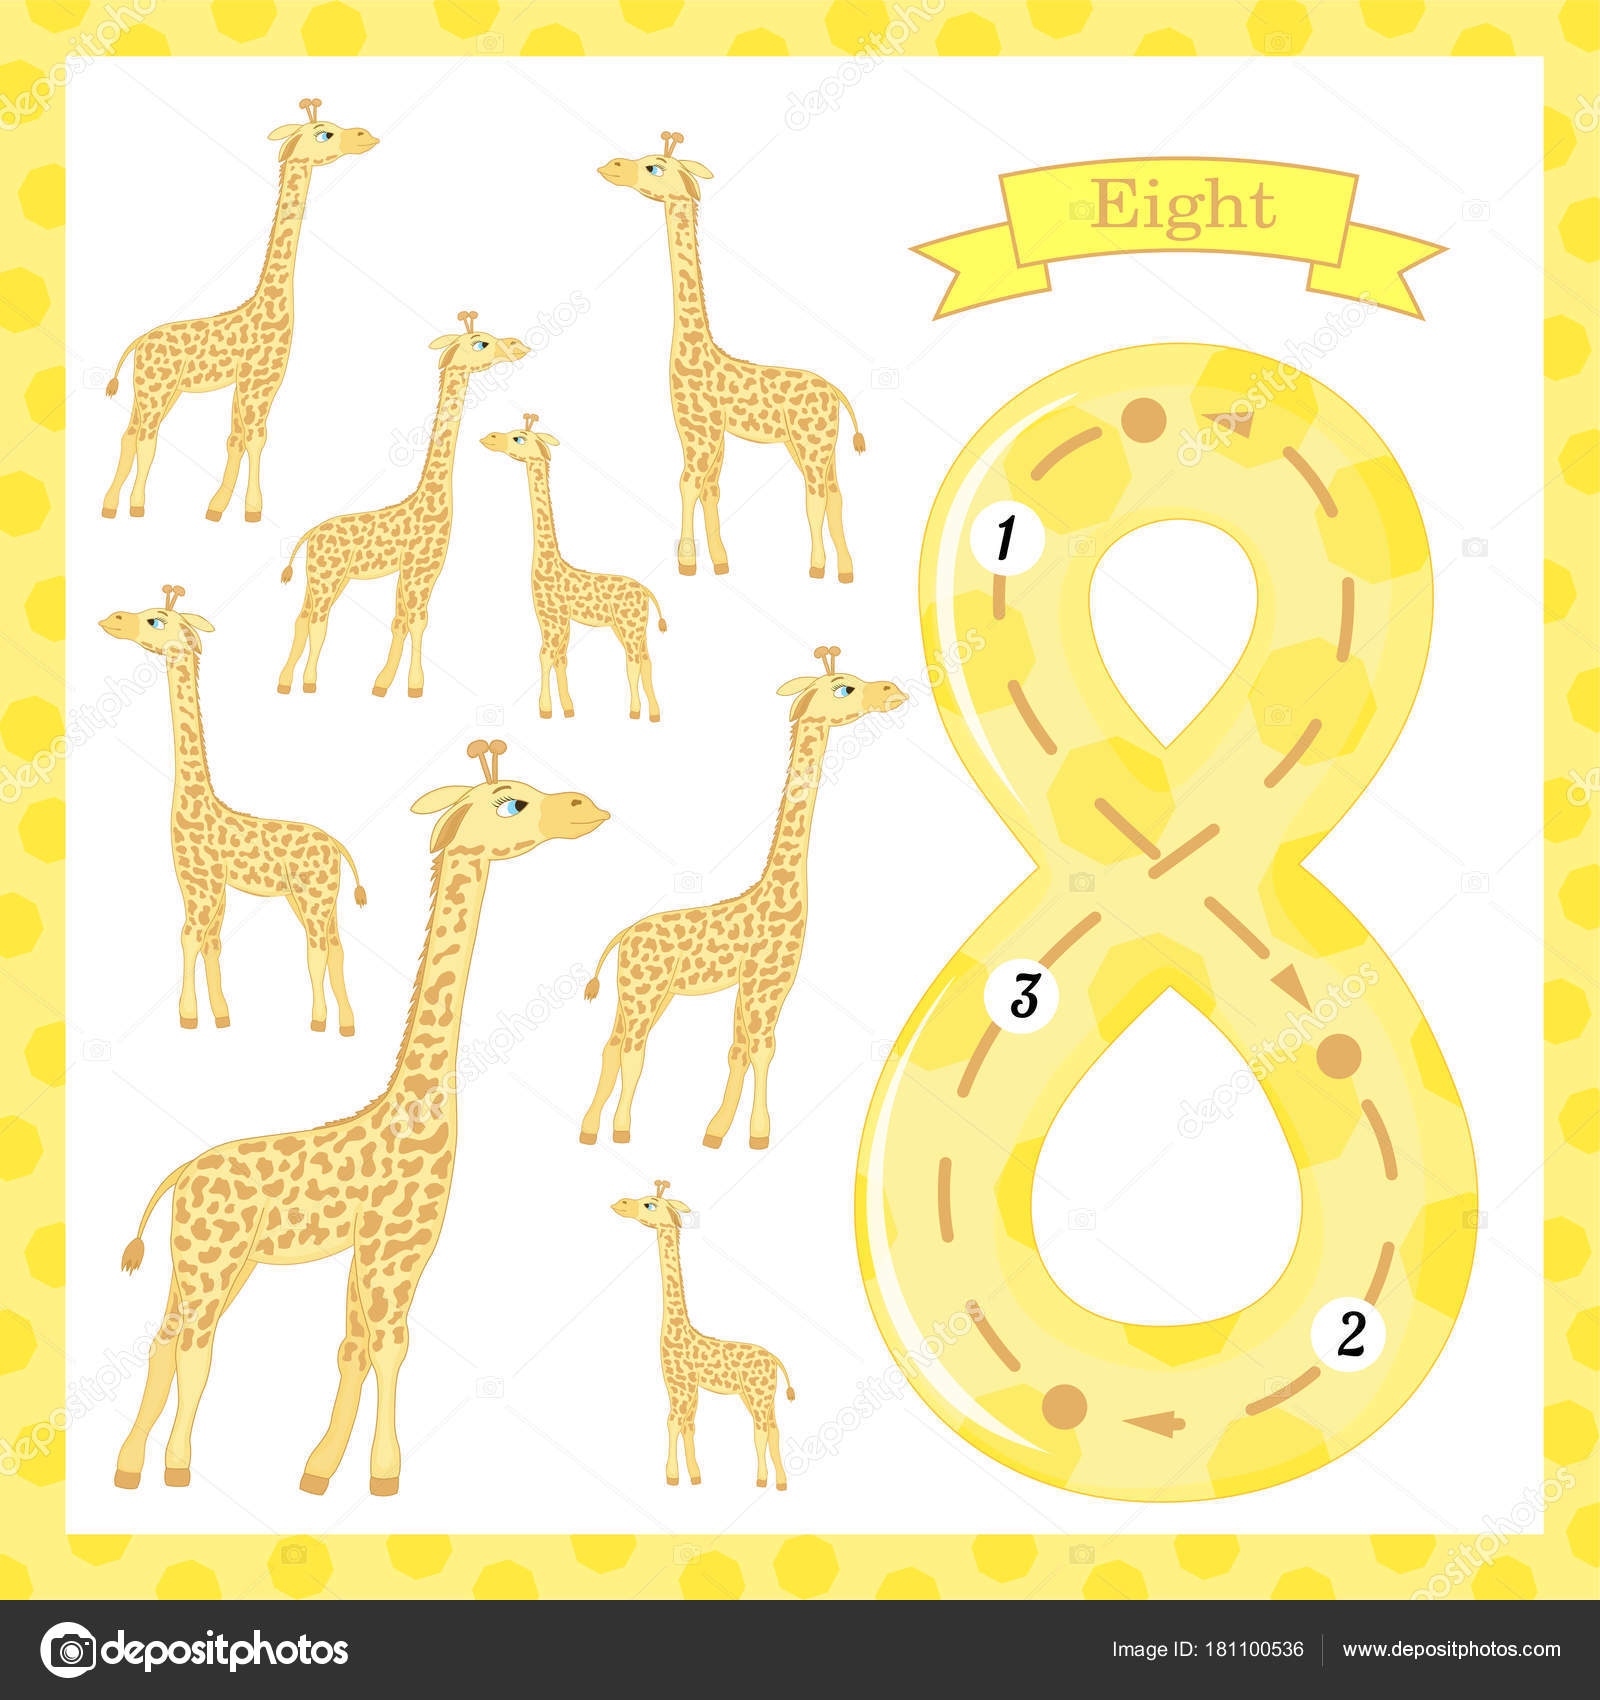 Cute Children Flashcard Number One Tracing With 8 Giraffes